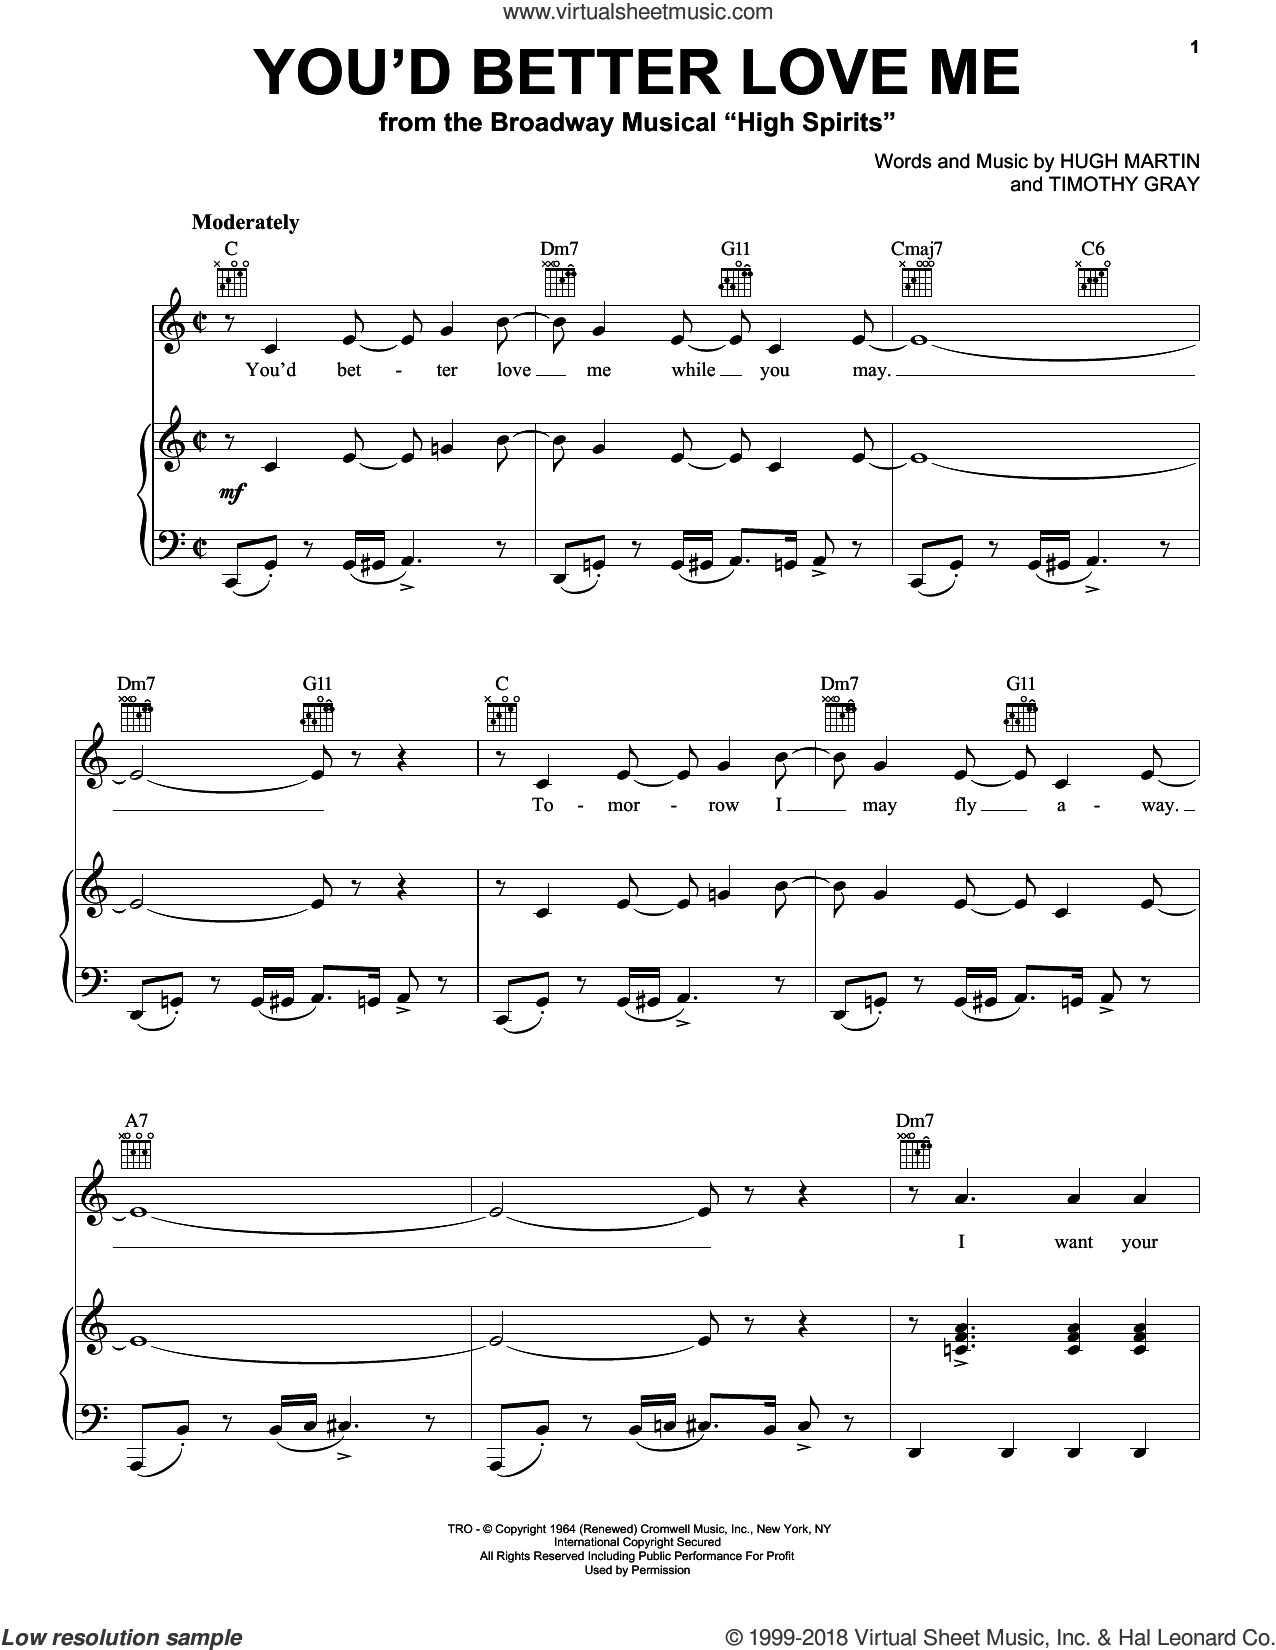 You'd Better Love Me sheet music for voice, piano or guitar by Hugh Martin and Timothy Gray, intermediate skill level